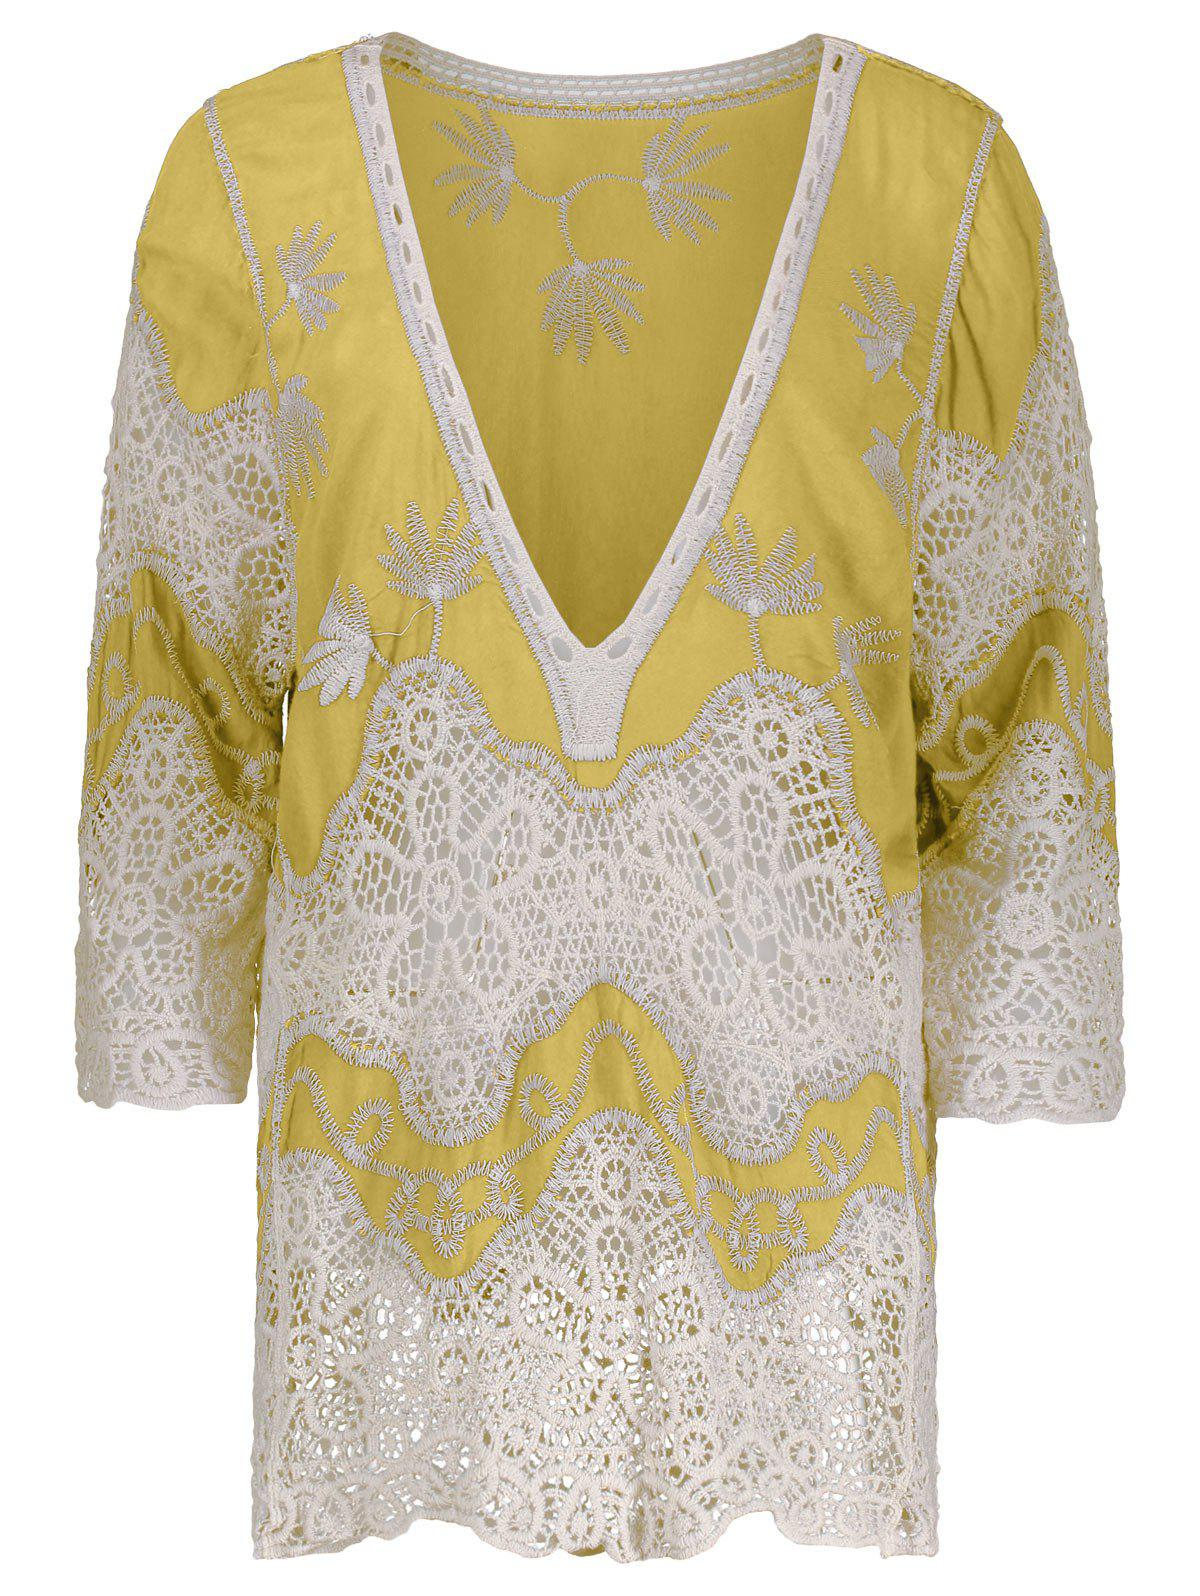 V Neck Crochet Cover Up Blouse - YELLOW ONE SIZE